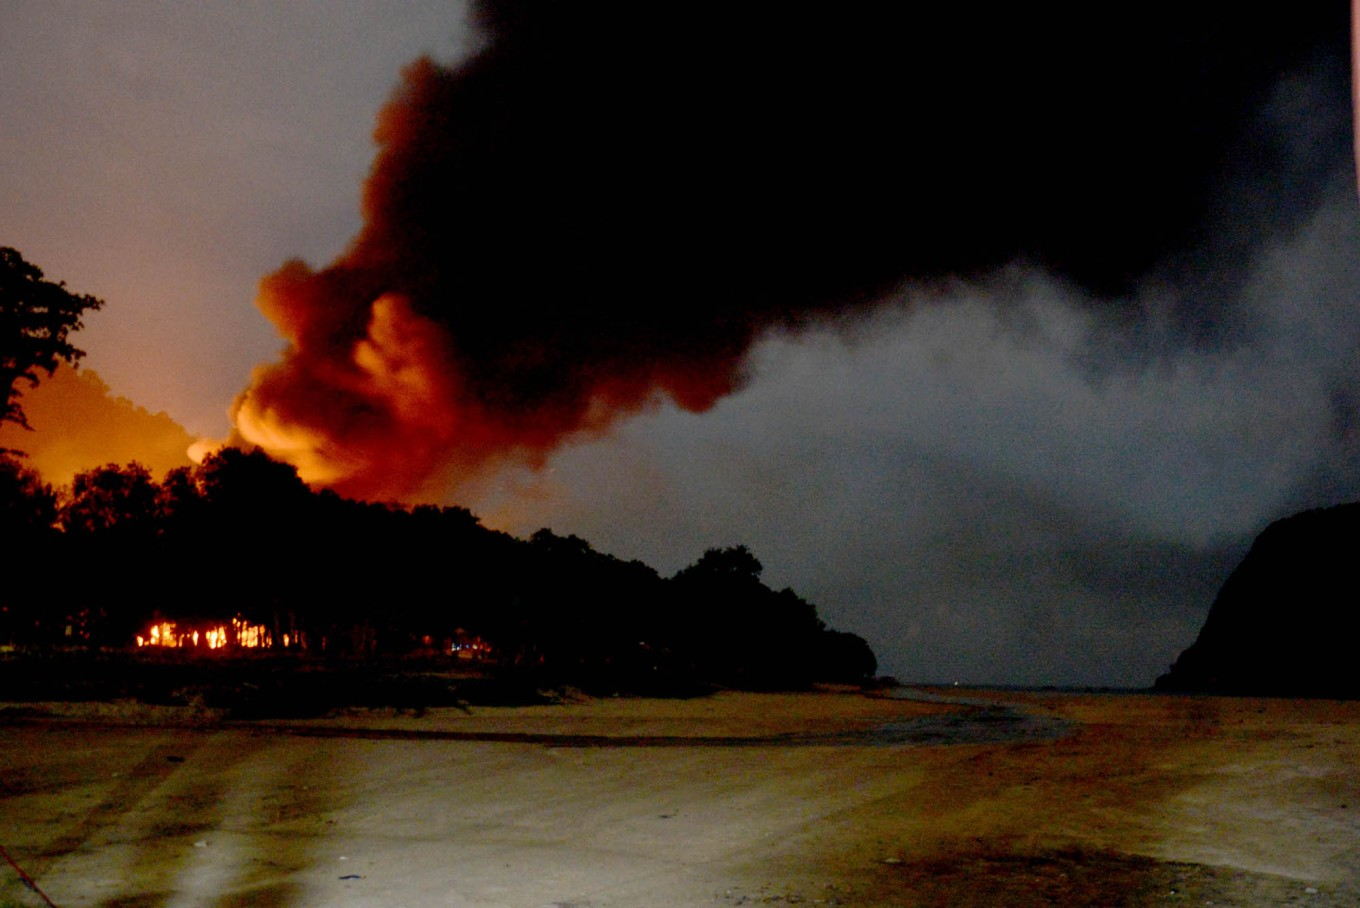 A fire burns amid a social conflict over possible gold mining on the island. JP/Tarko Sudiarno